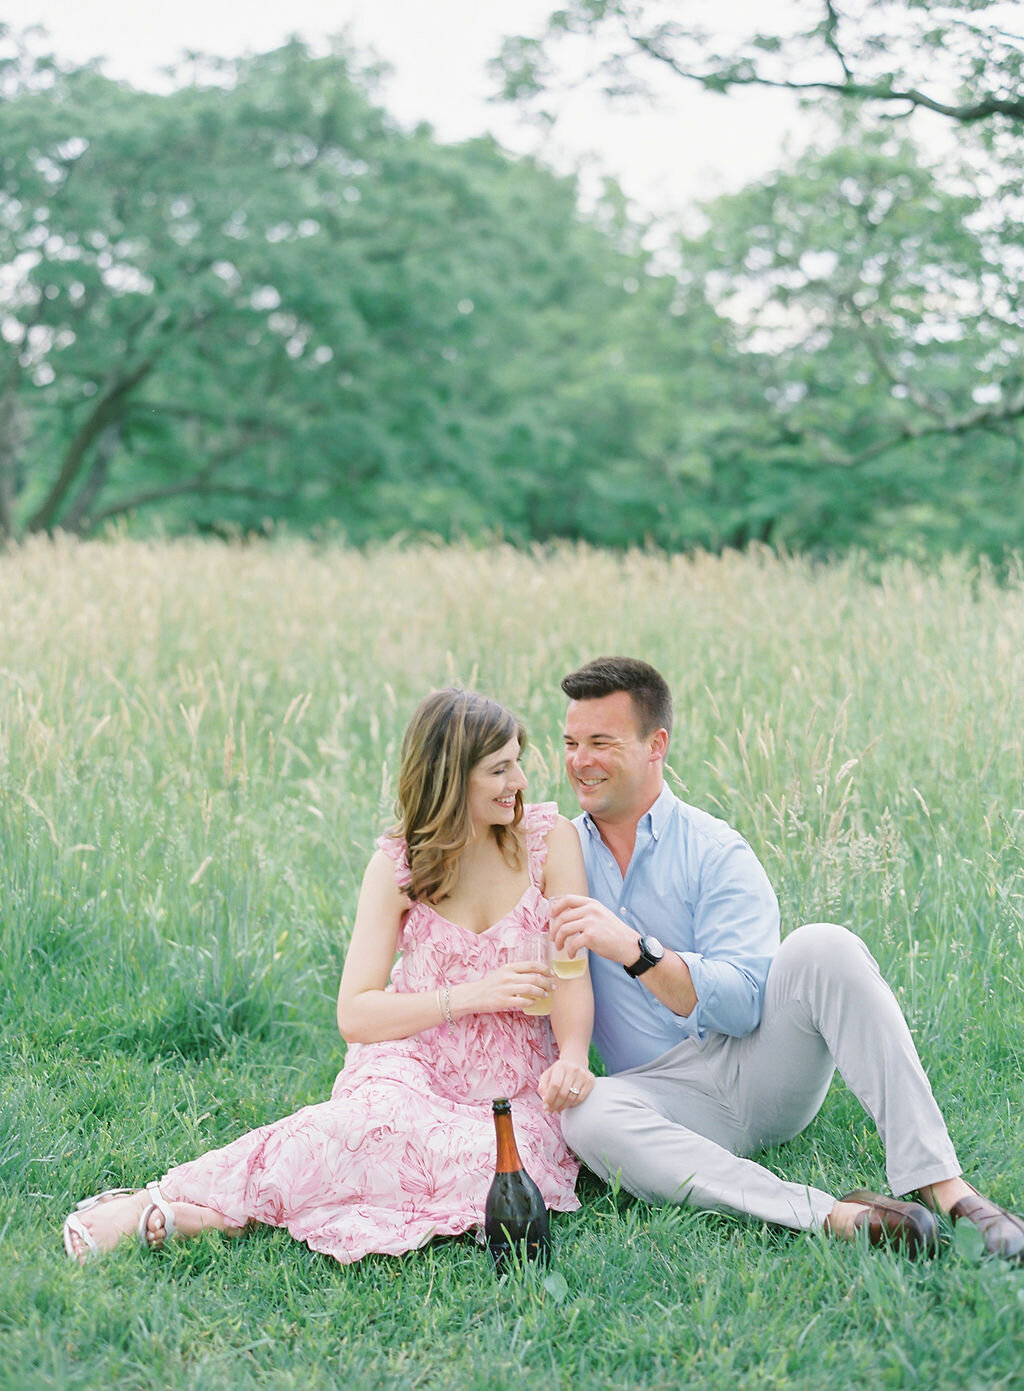 Cylburn Arboretum and Tribeca Engagement Photography Session by Vicki Grafton on East Made Co Baltimore Wedding Planner Blog-67.jpg